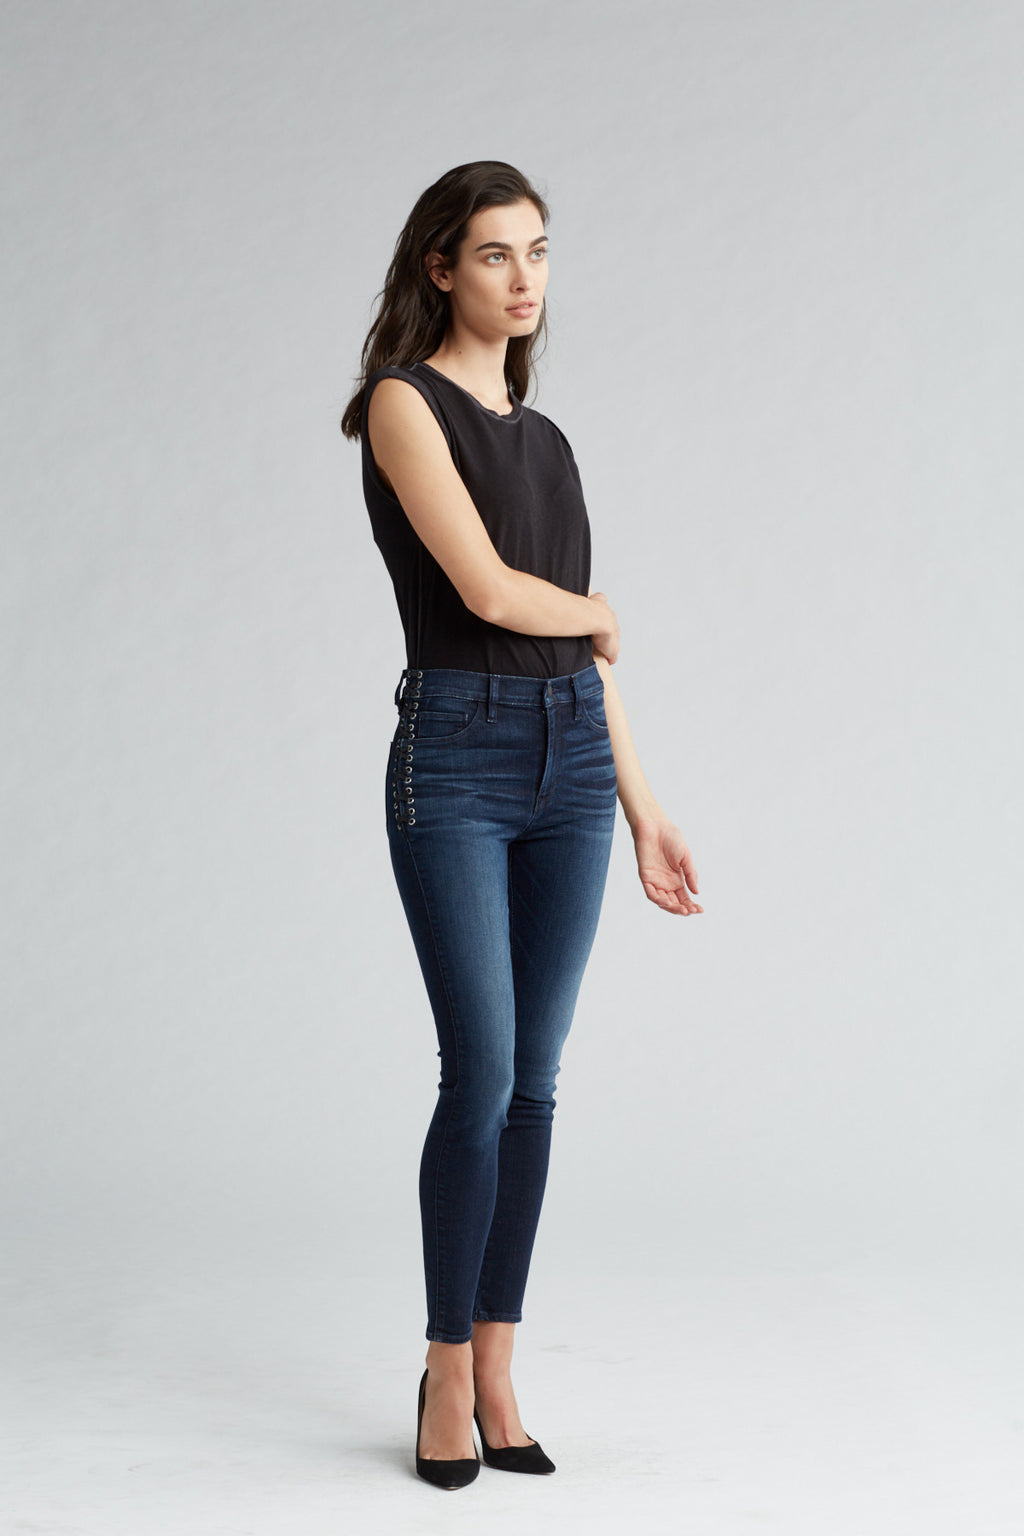 BARBARA HIGH RISE SUPER SKINNY ANKLE JEAN - MOON LIGHT - Image 2